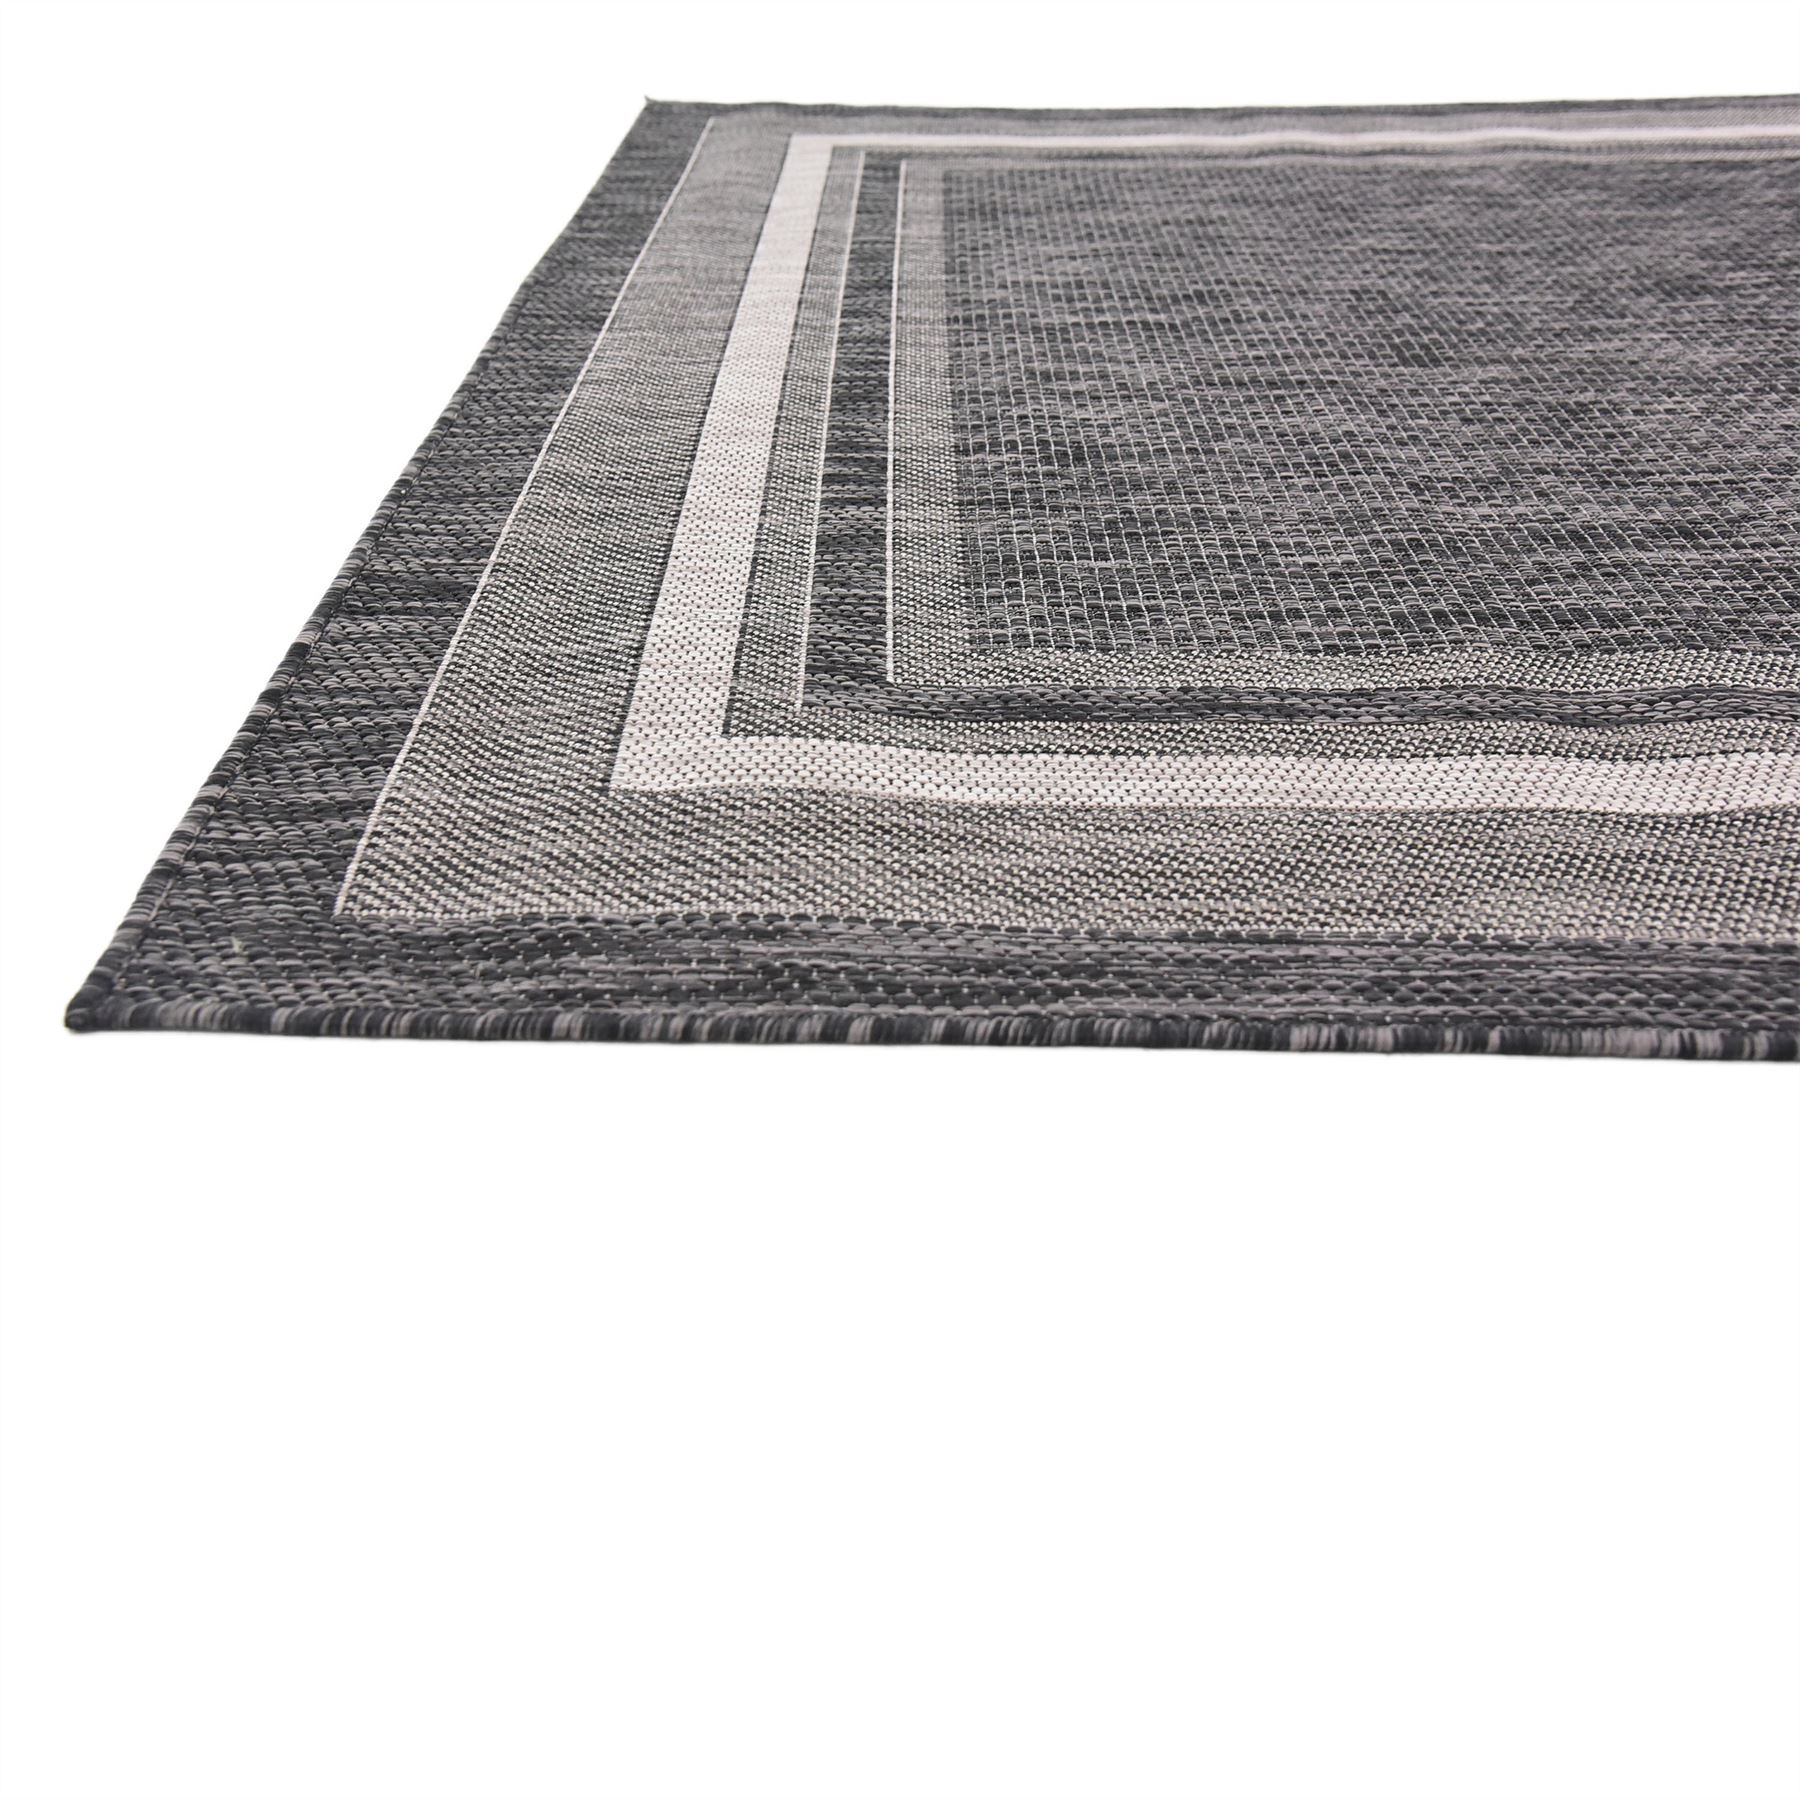 fudge loop ripple berber area indoor product rug oceanside carpet level rugs outdoor